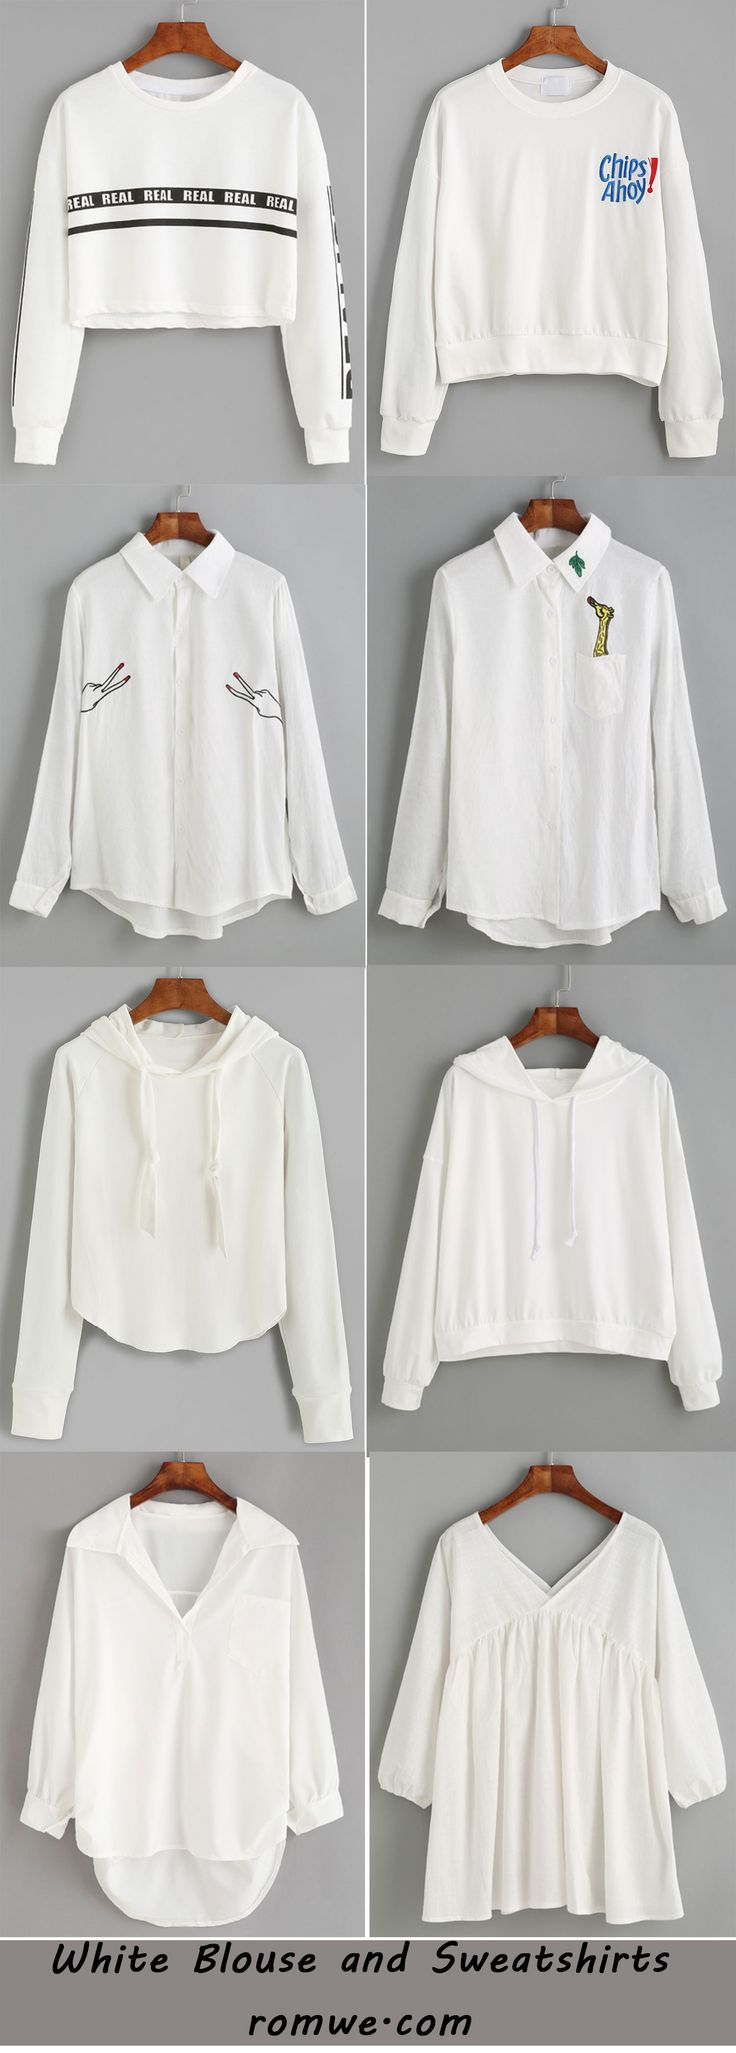 Pure Color - white blouses and sweatshirts from romwe.com